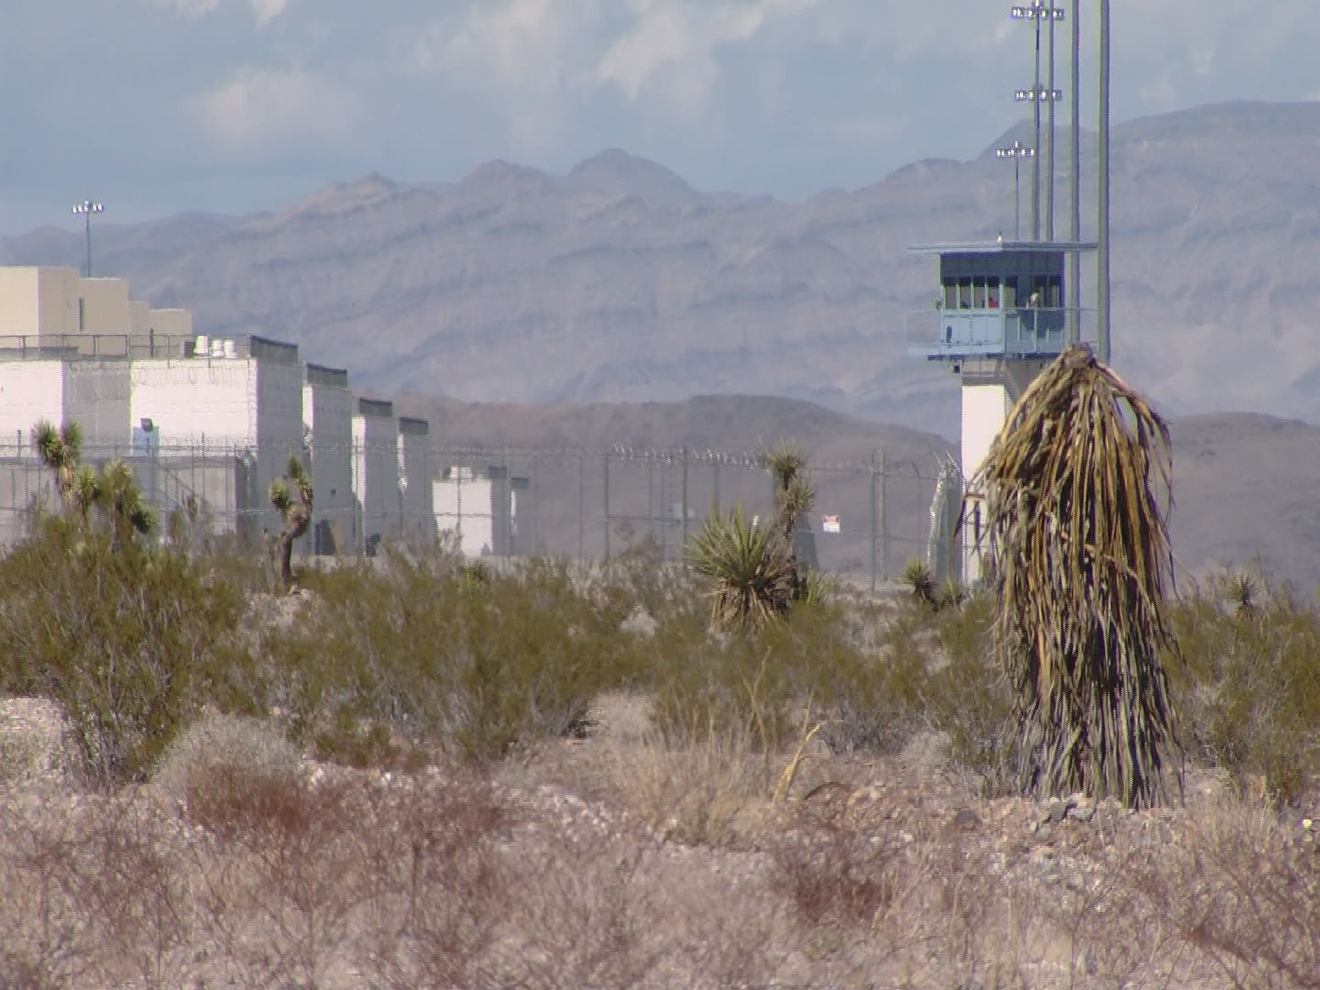 Solitary...it's a punishment once thought to reform, but is it inflicting more harm than good? News 3 goes inside the cell for a rare look at one prison reinventing incarceration. (KSNV)